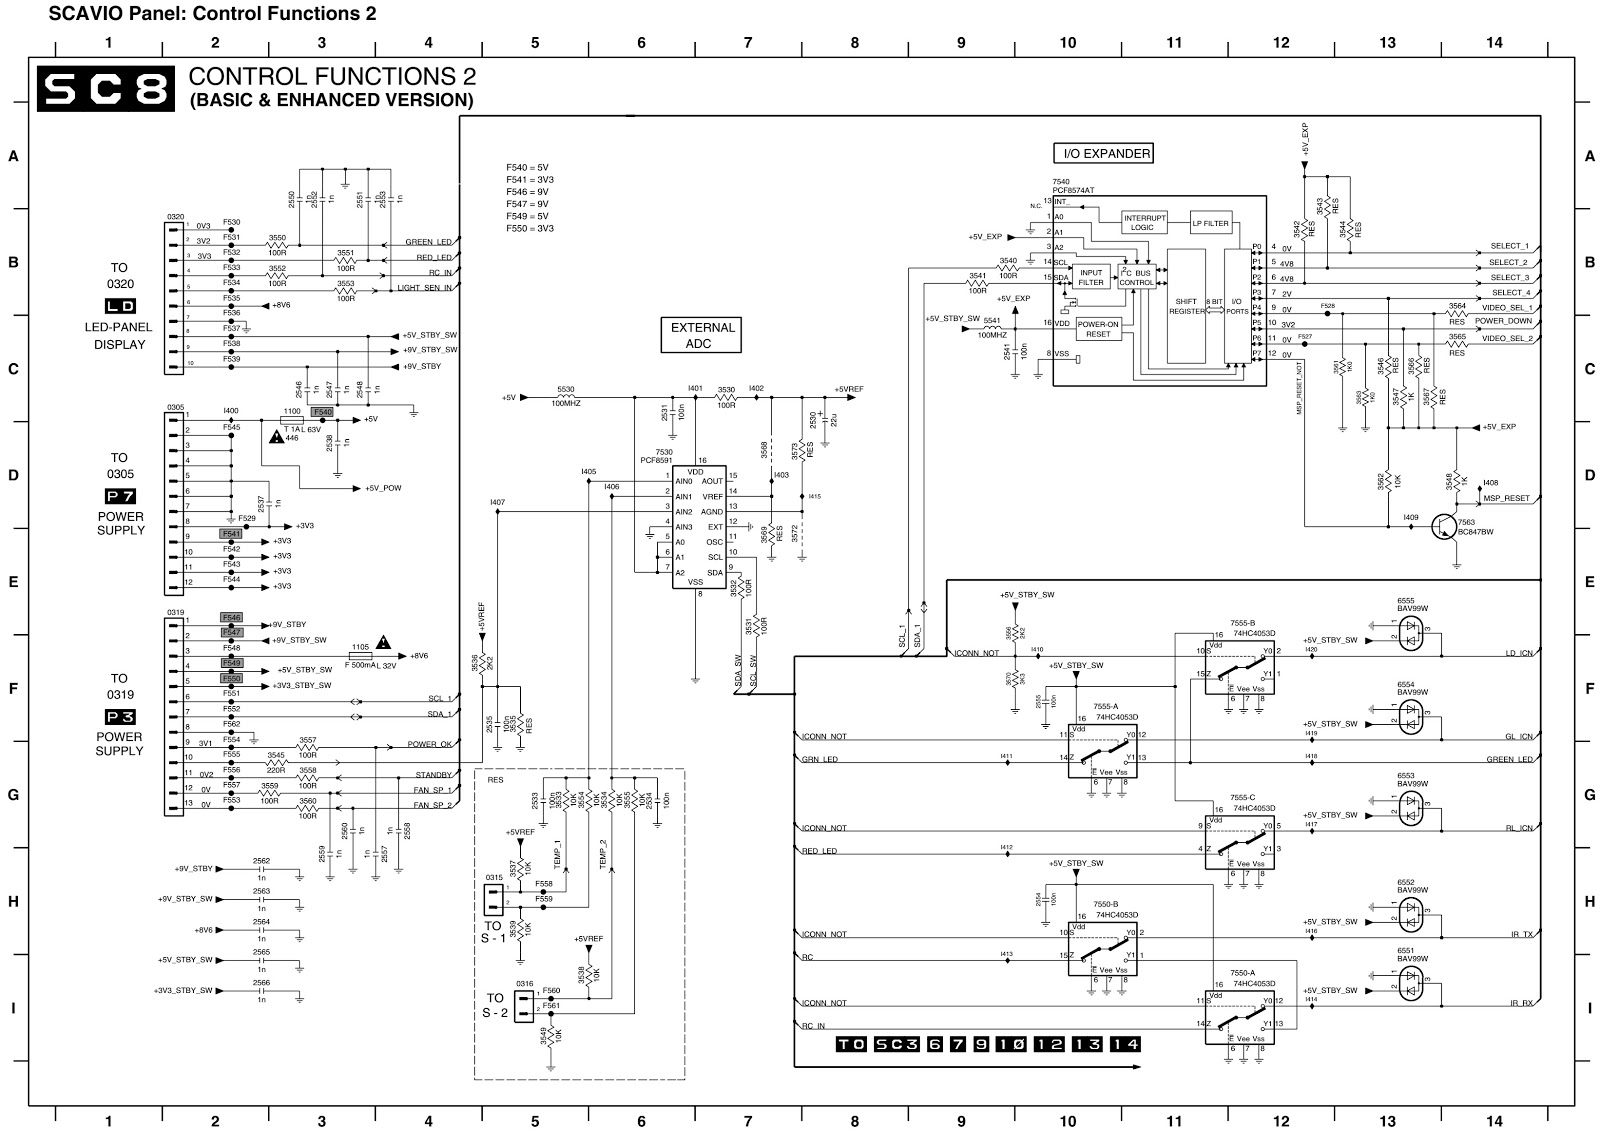 philips fm 23 - plasma display - main board schematic